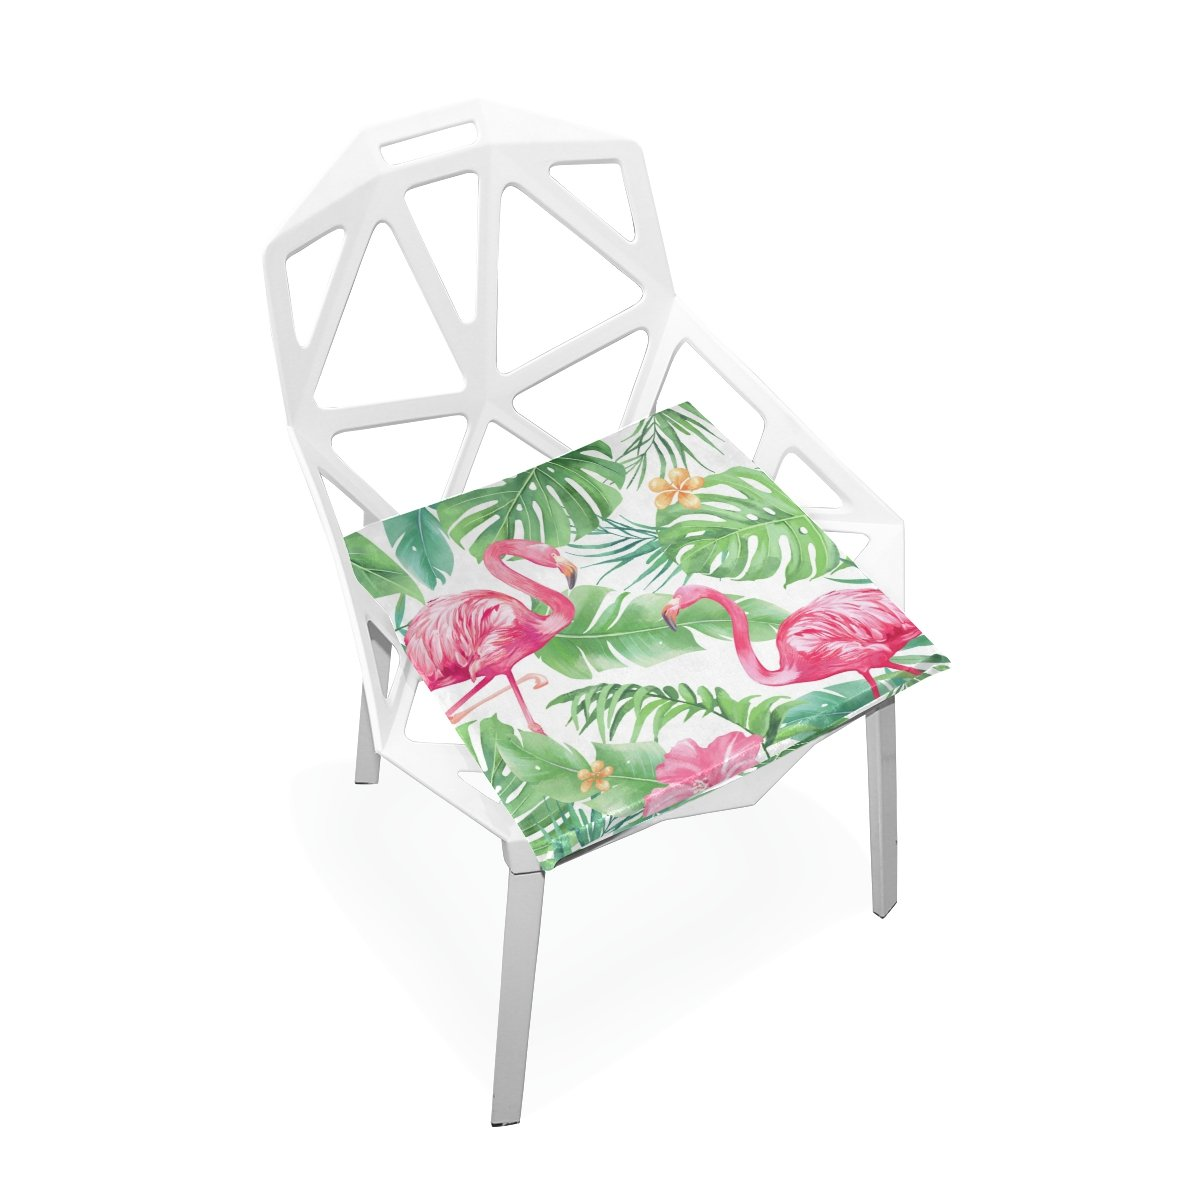 TSWEETHOME Comfort Memory Foam Square Chair Cushion Seat Cushion with Watercolor Flamingo Chair Pads for Hardwood Floors Dining Chairs Office Chairs